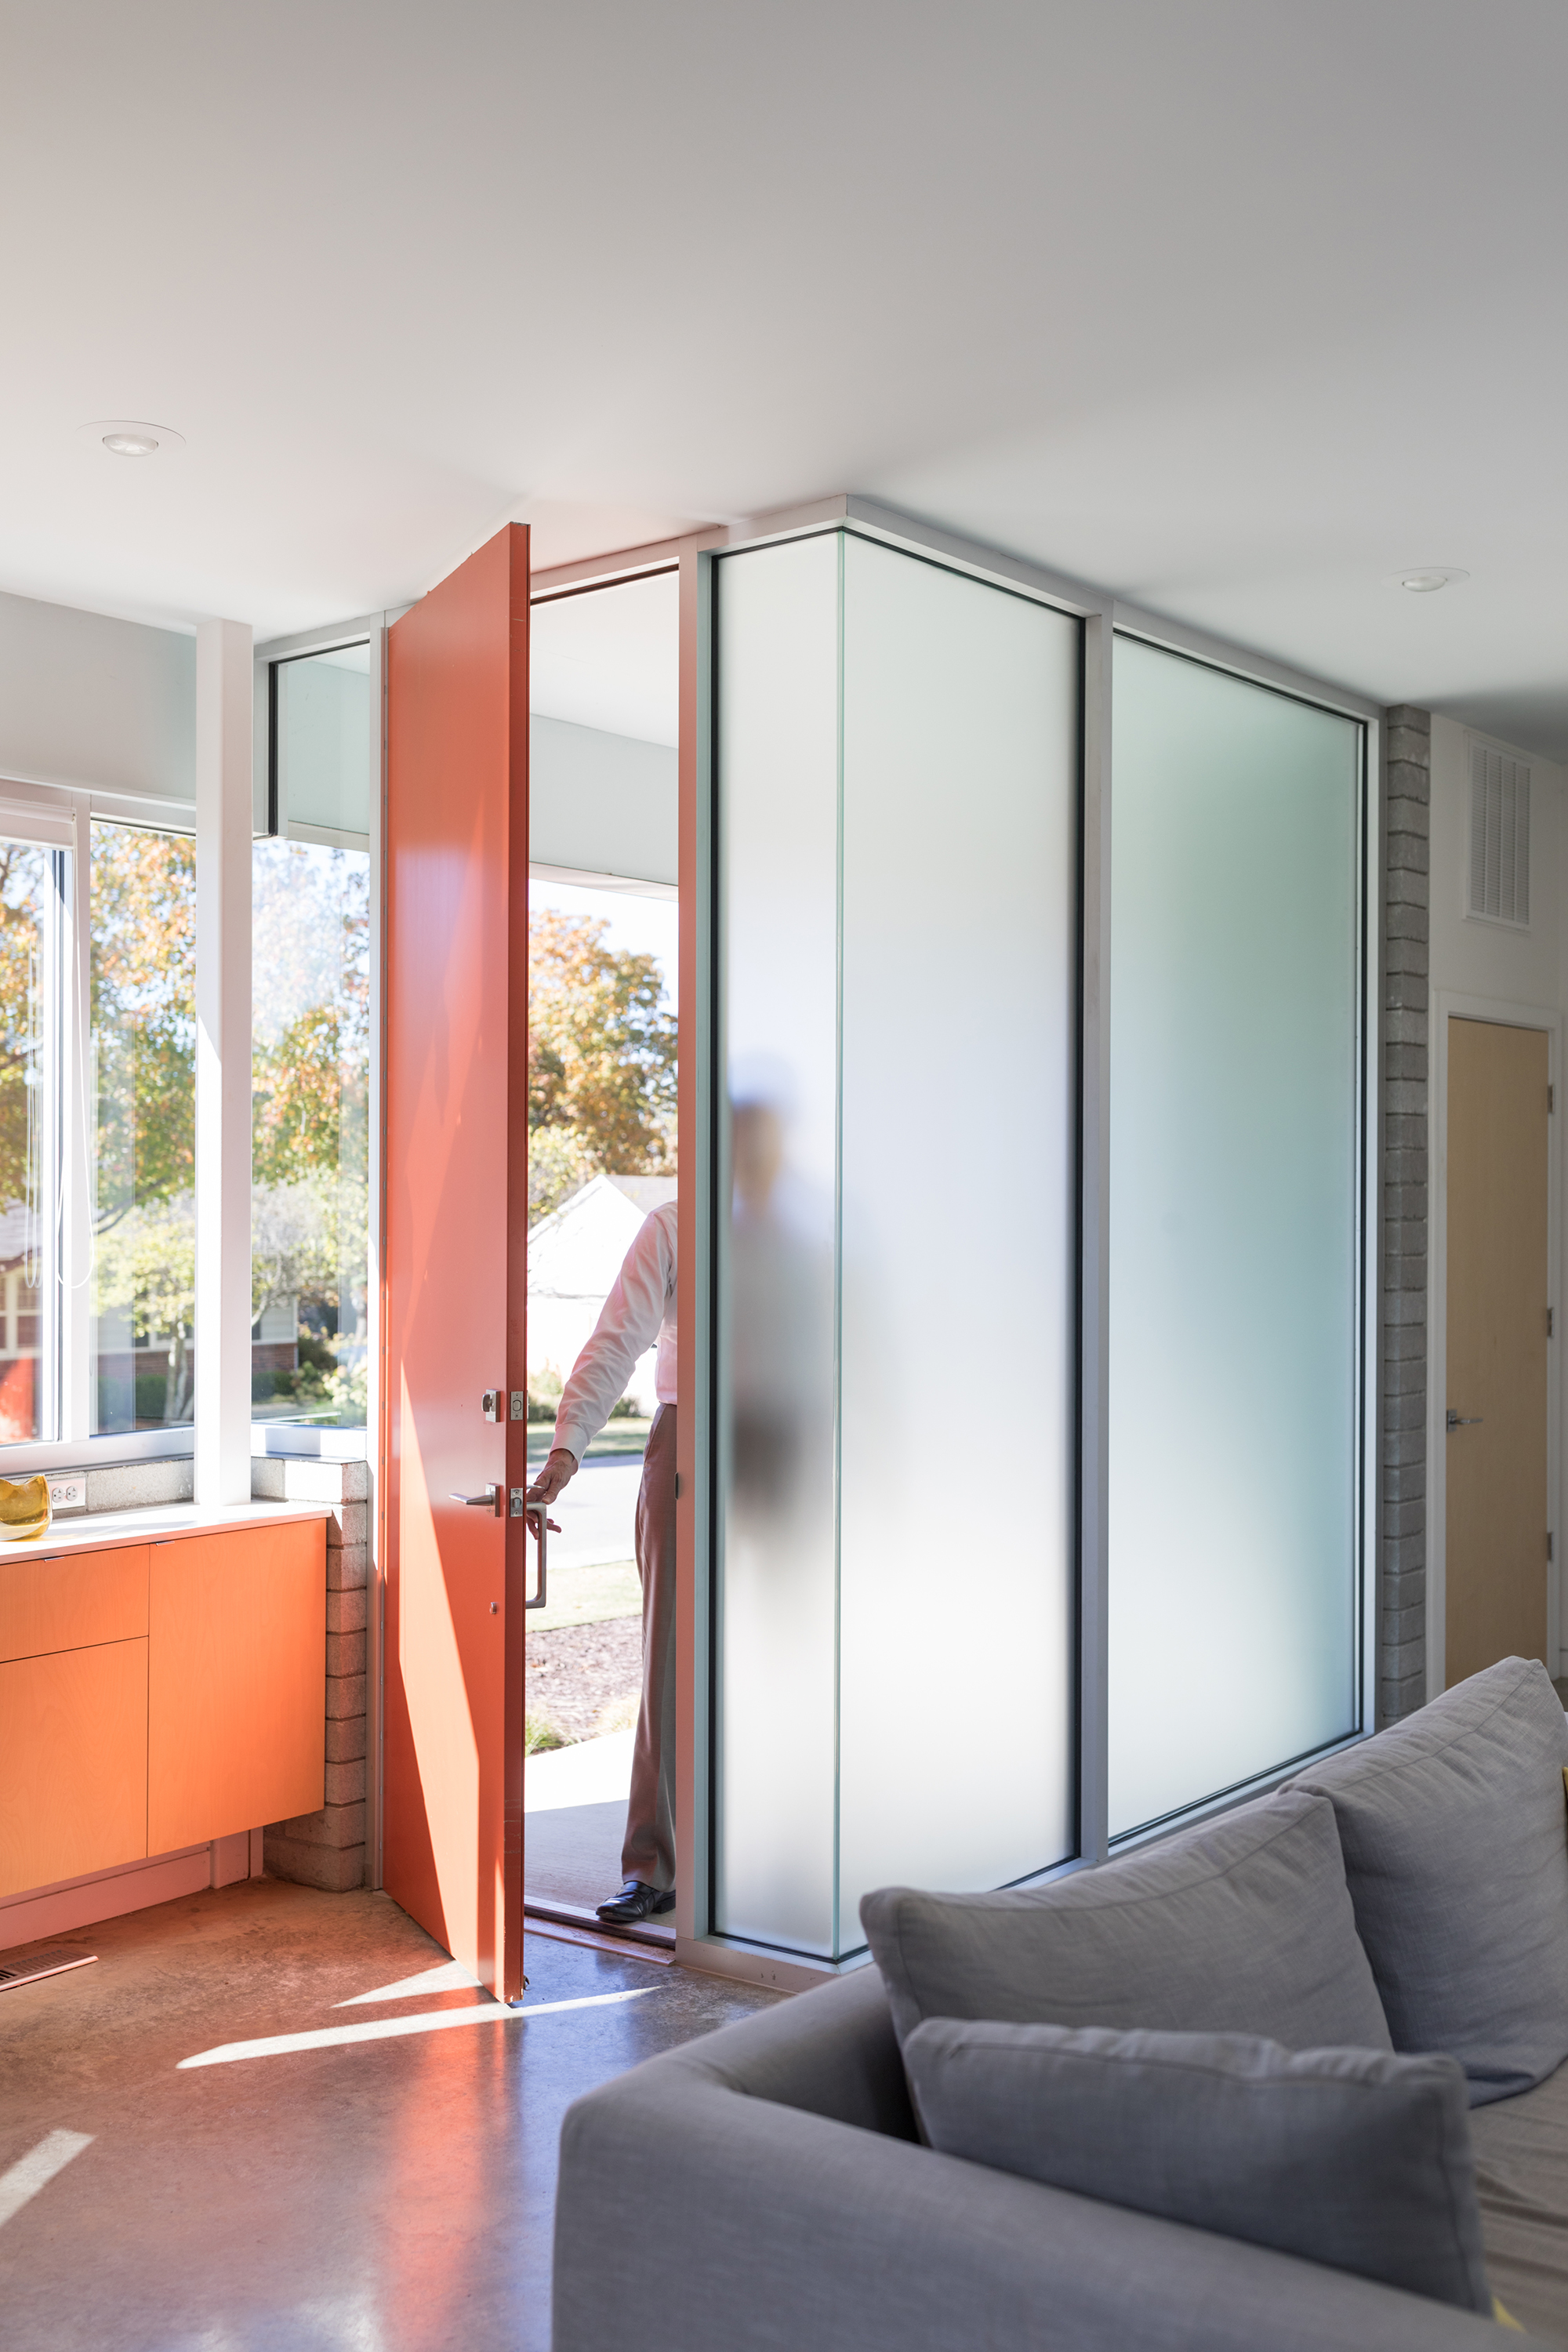 An orange door marks the entry of this modern house with large glass windows and doors.